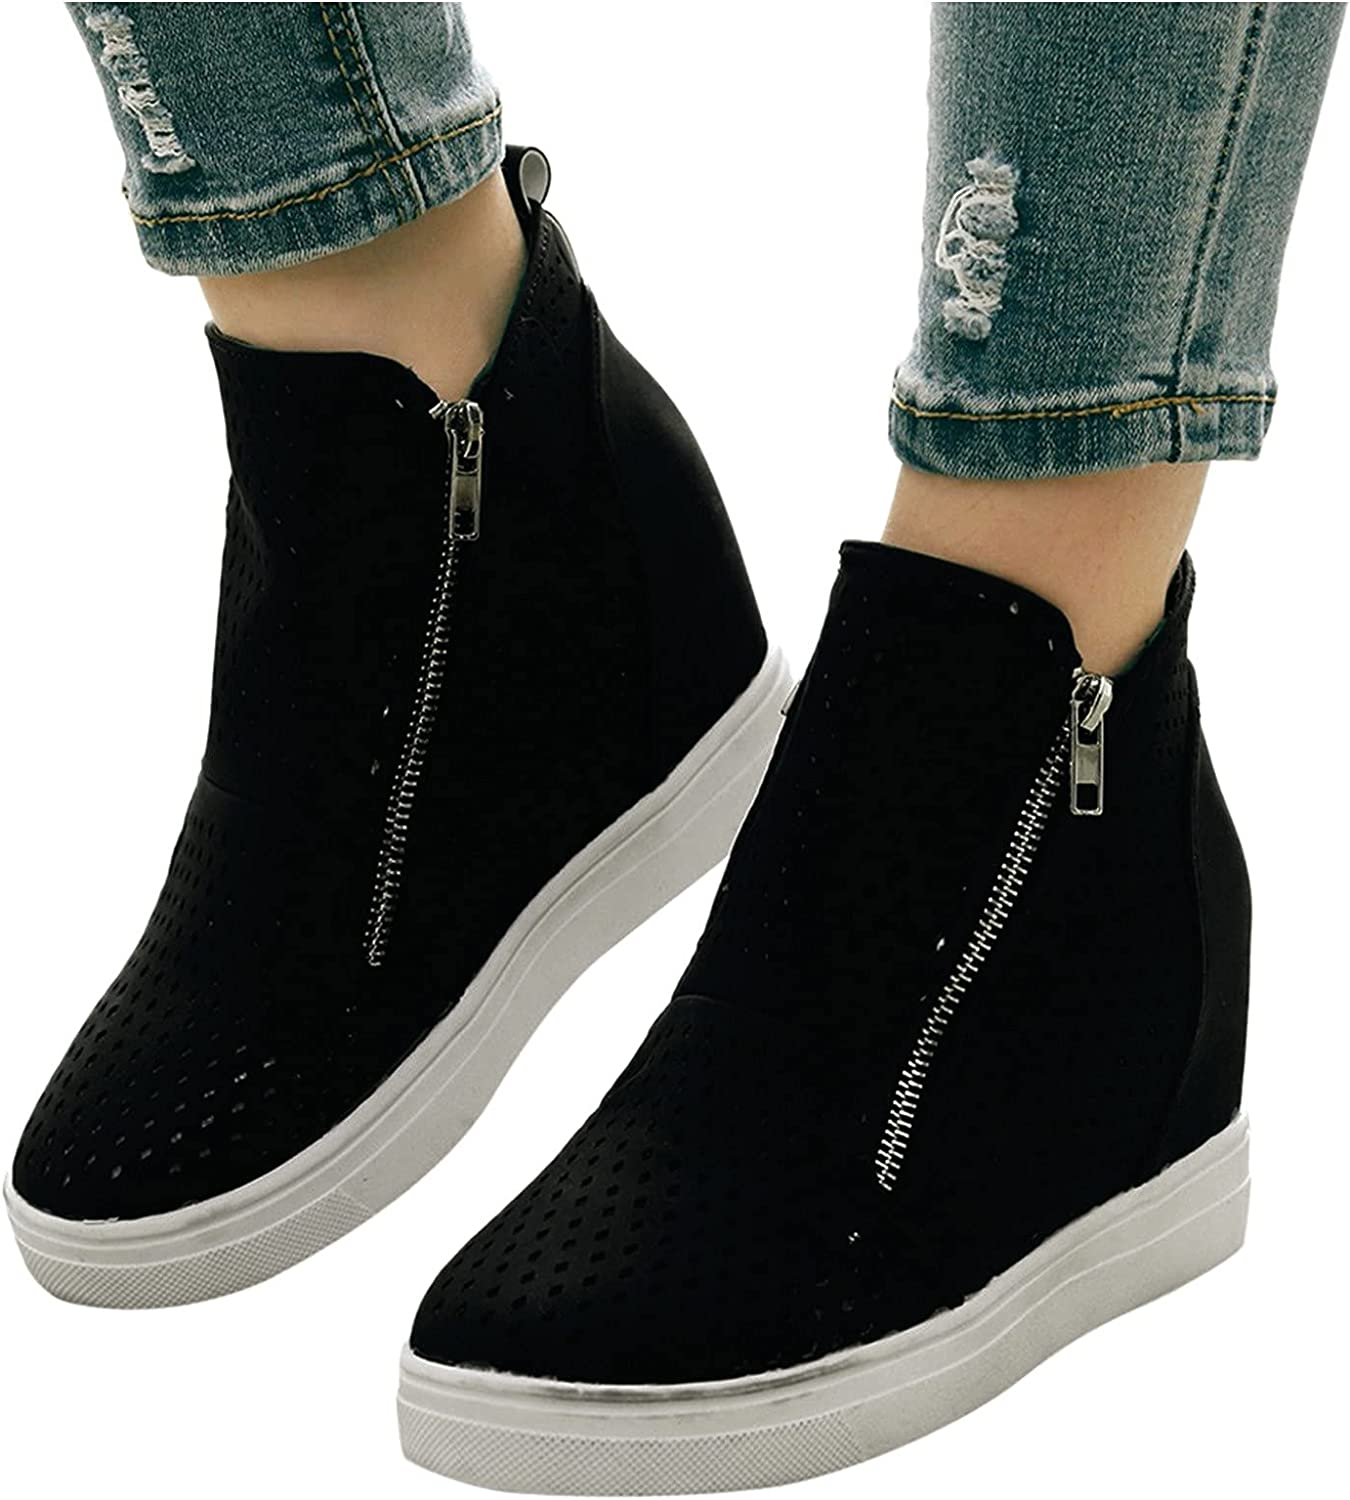 UOCUFY Boots for Women with Heel,Womens Slip On Wedge Sneakers Ankle Short Booties Non Slip Shoes Breathable Casual Boots